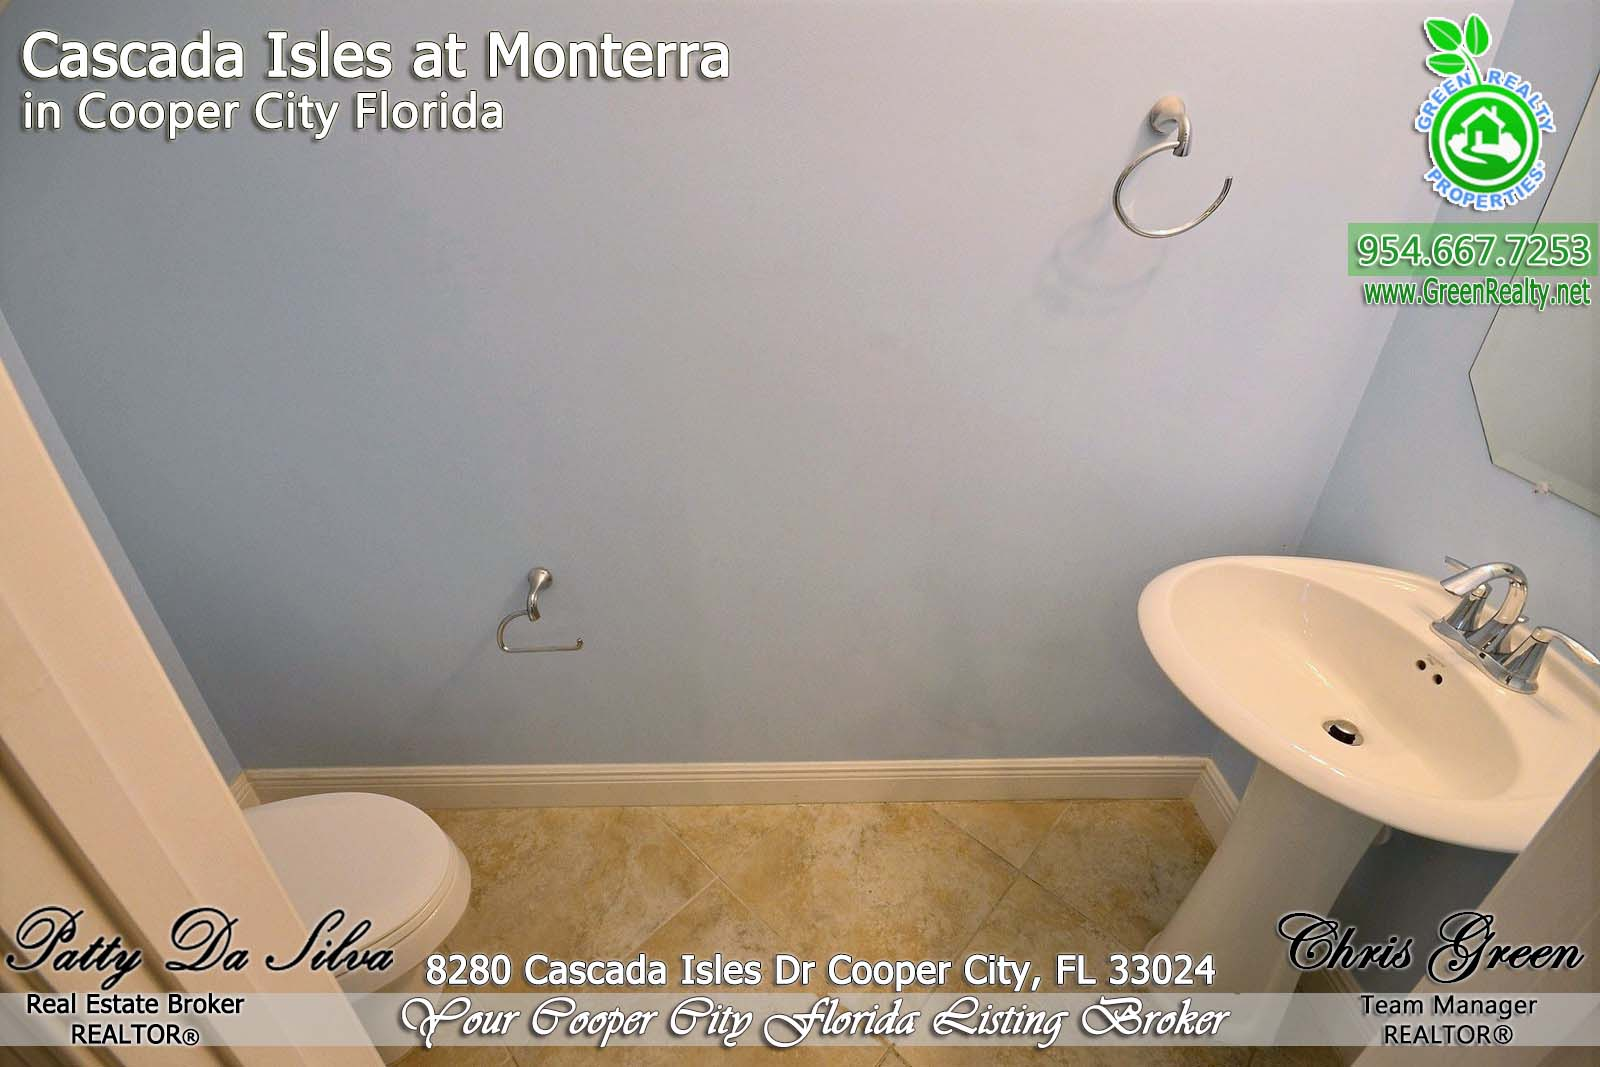 7 Homes For Sale in Cascada Isles (4)